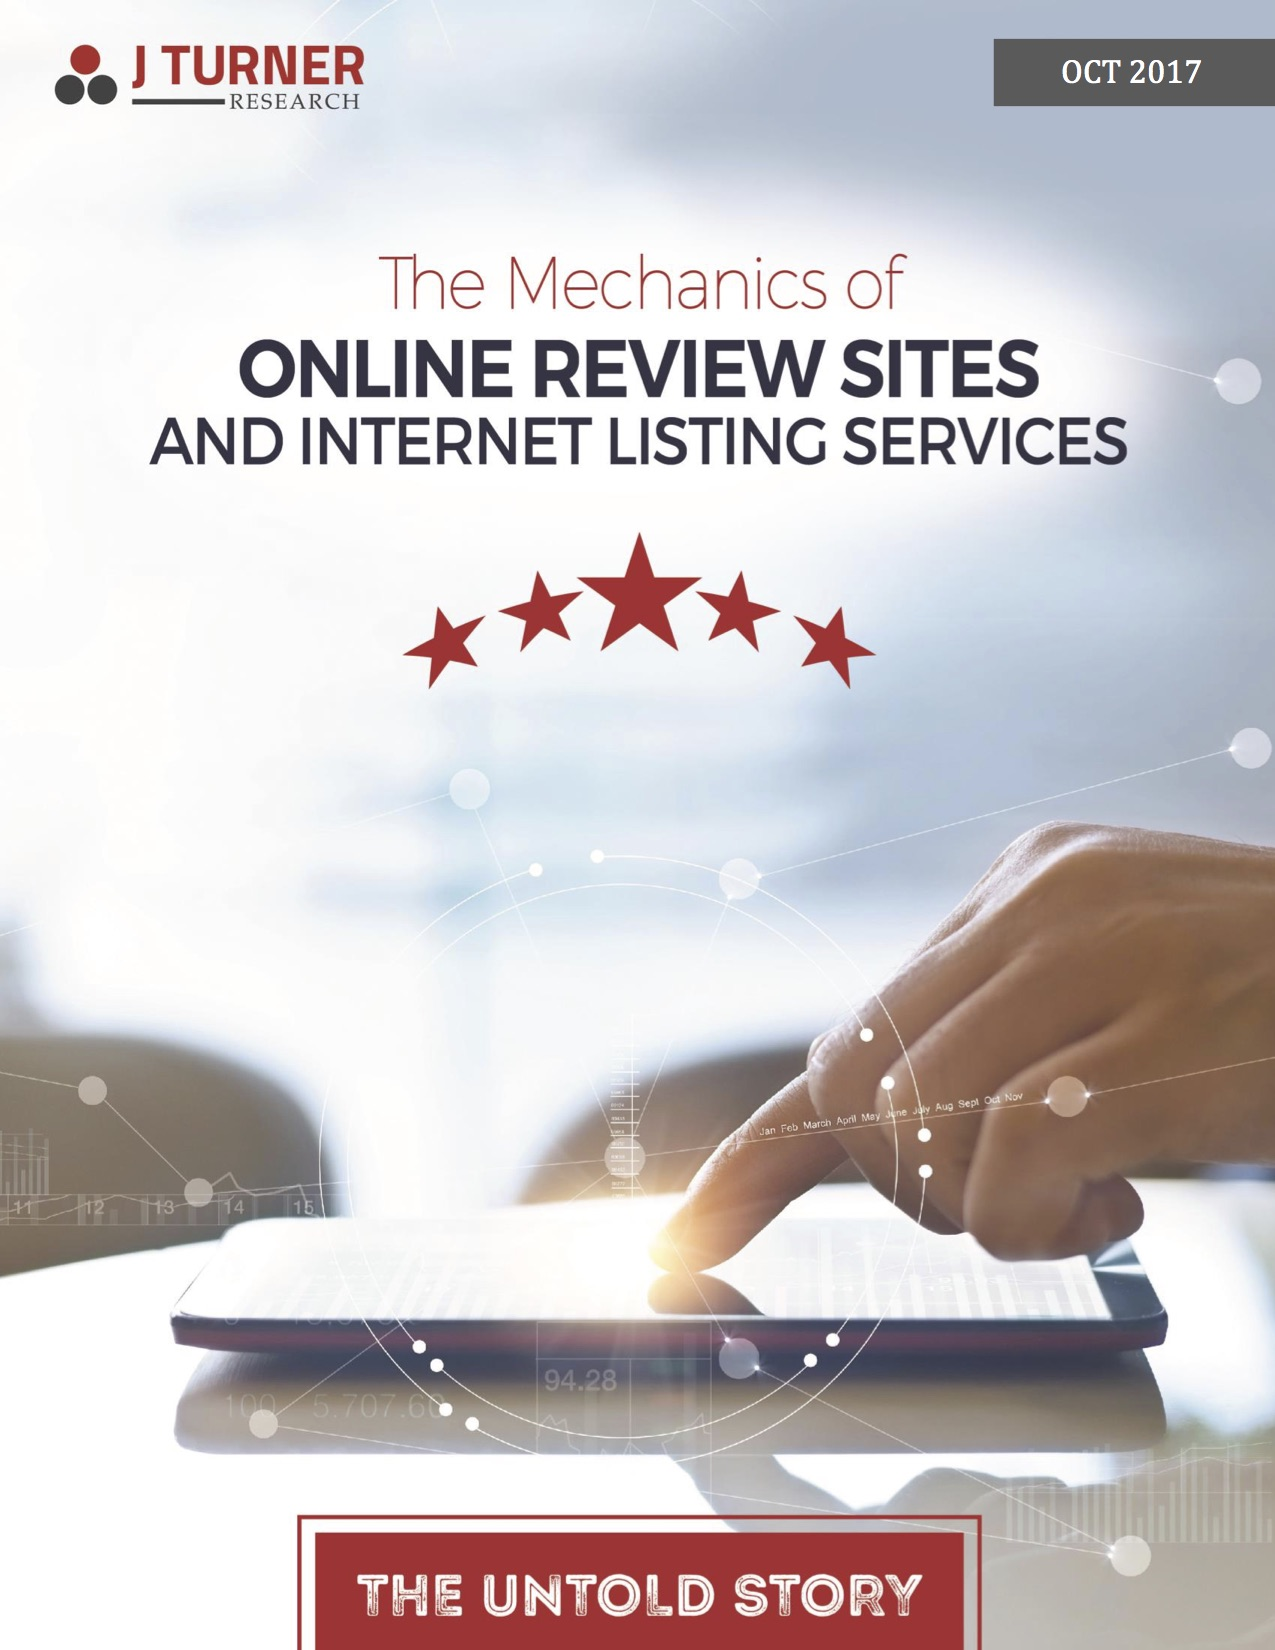 J Turner Research - The Mechanics of Review Sites (October 2017).jpg